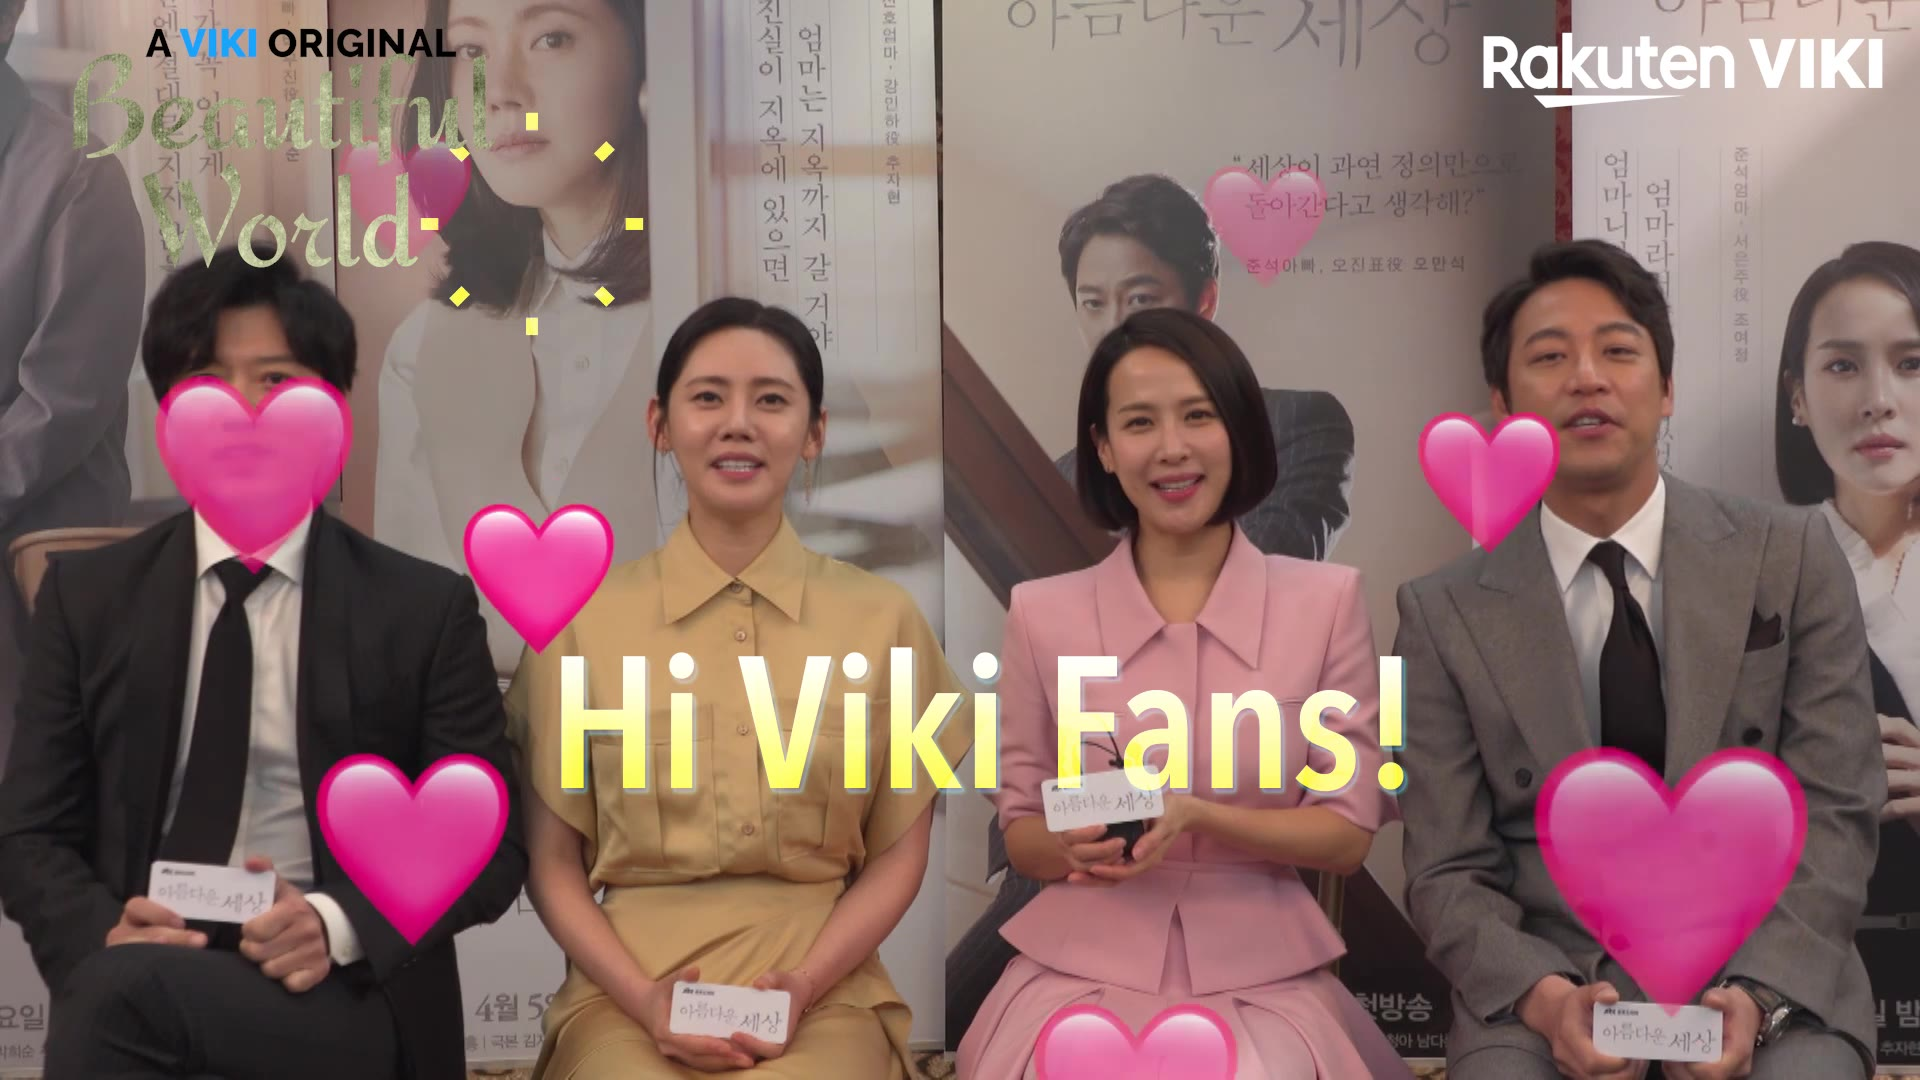 Shoutout to Viki Fans: Beautiful World